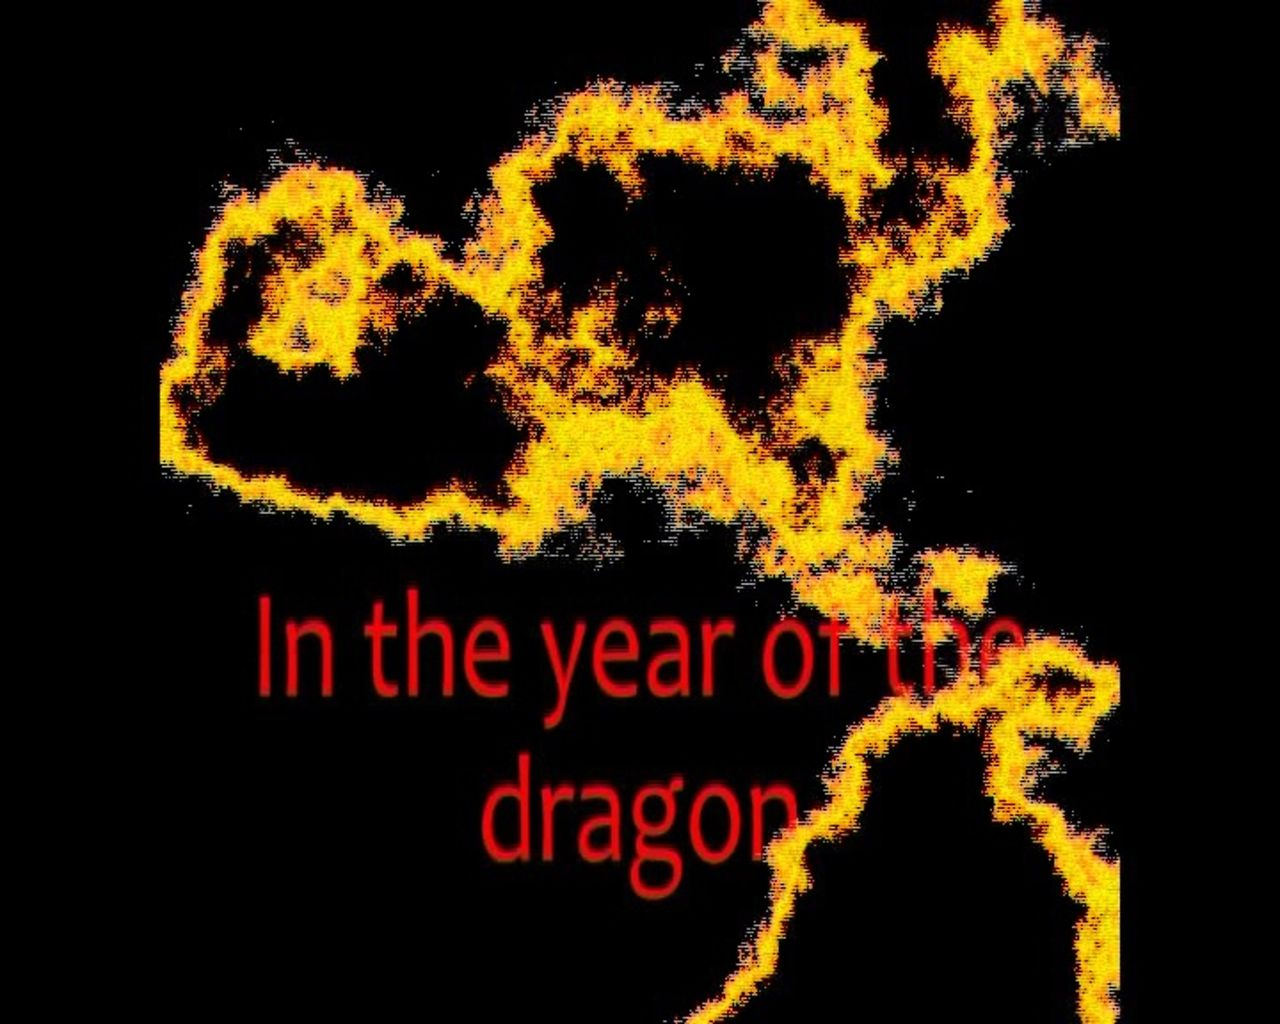 In the year of the dragon 2012